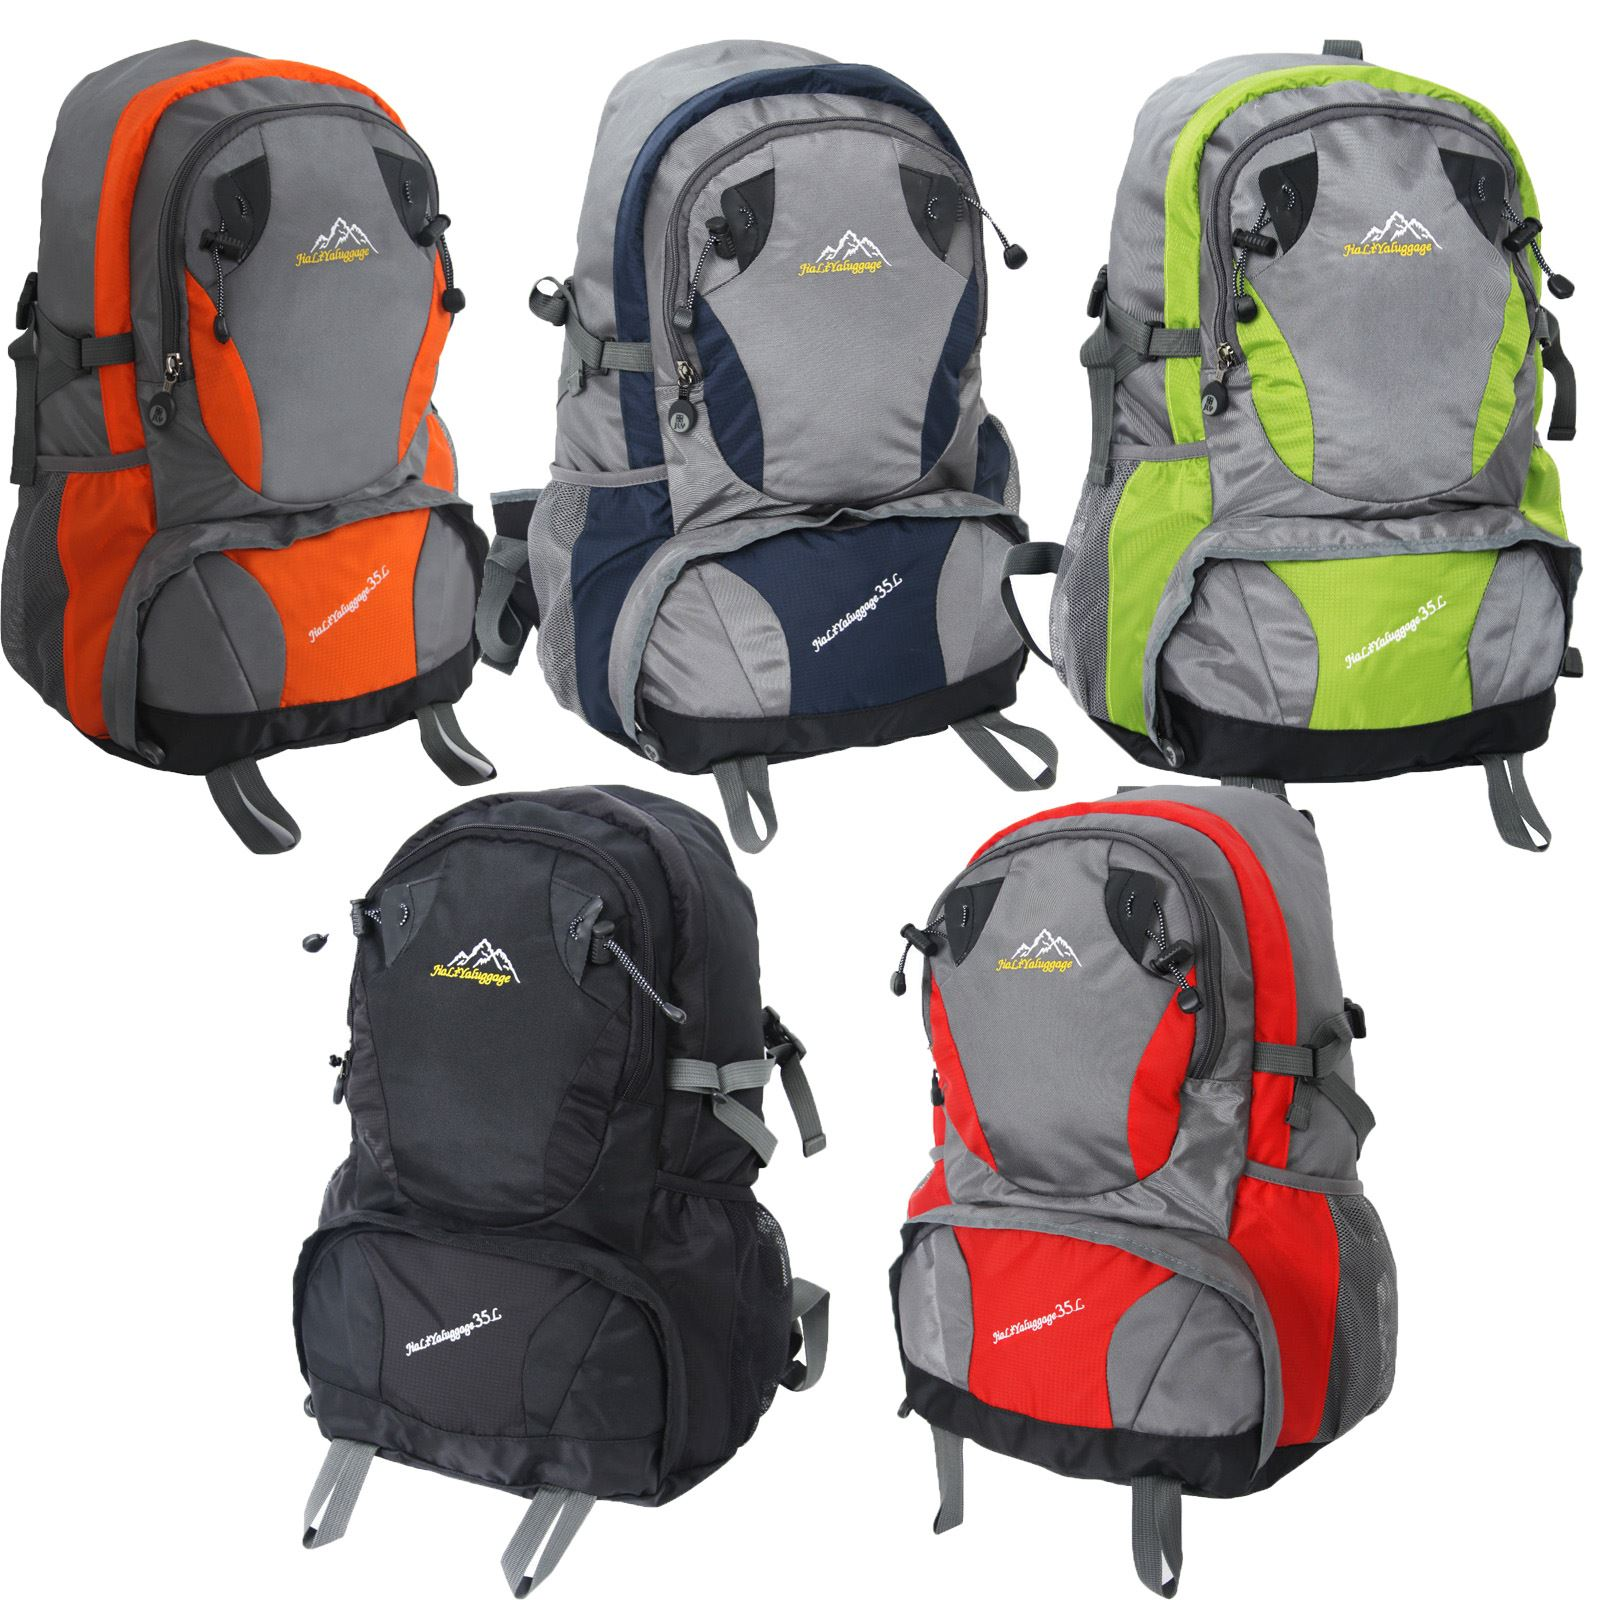 Image is loading 35L-Waterproof-Camping-Hiking-Backpack-Outdoor-Sport -Travel- 5c1351ec7c